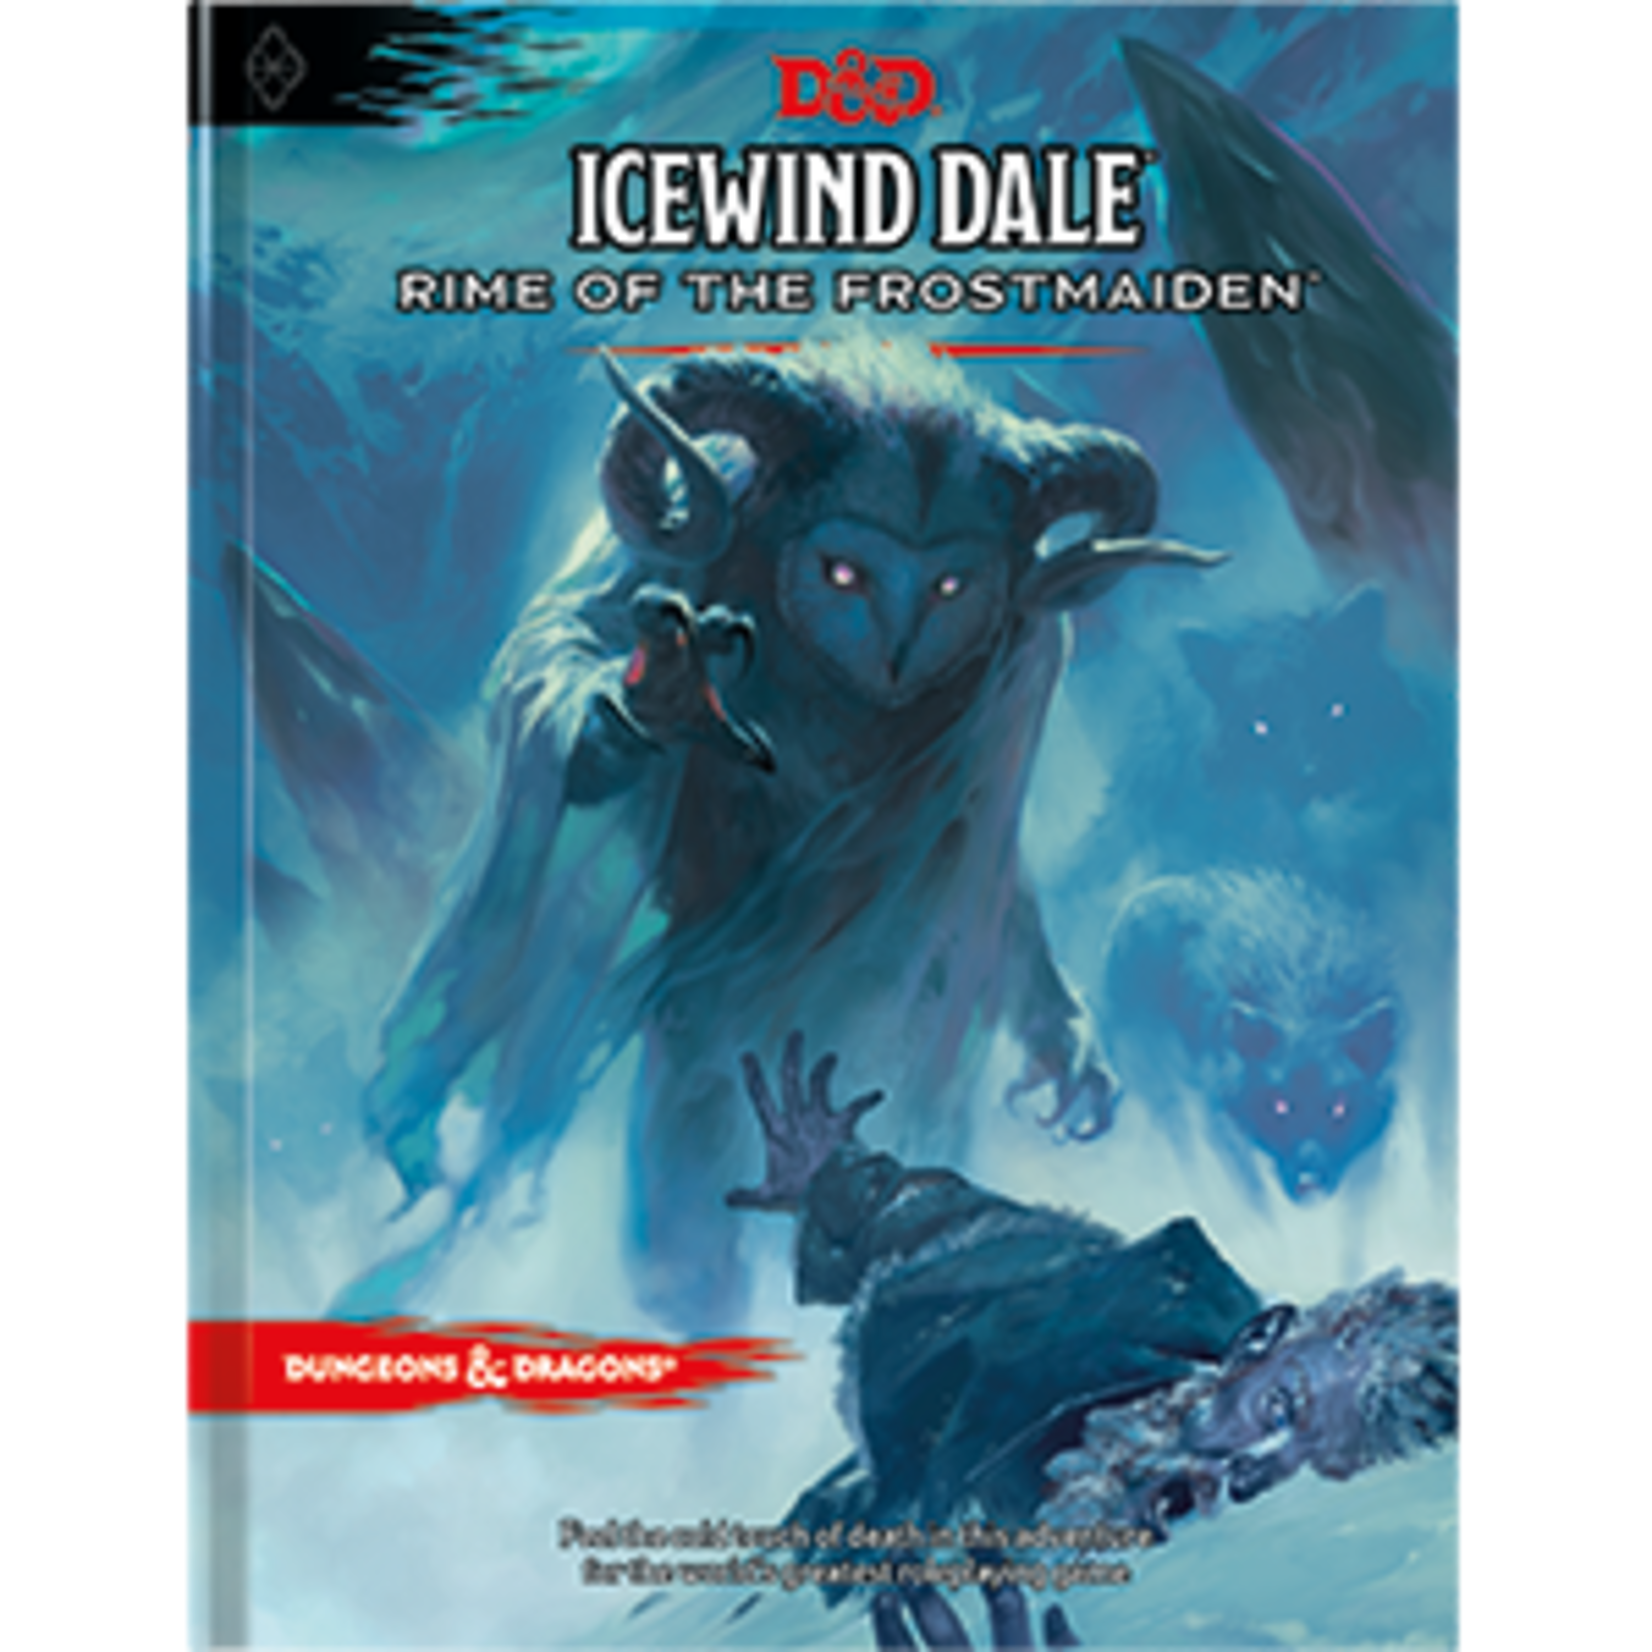 Dungeons & Dragons Dungeons & Dragons 5th Edition: Icewind Dale: Rime of the Frostmaiden